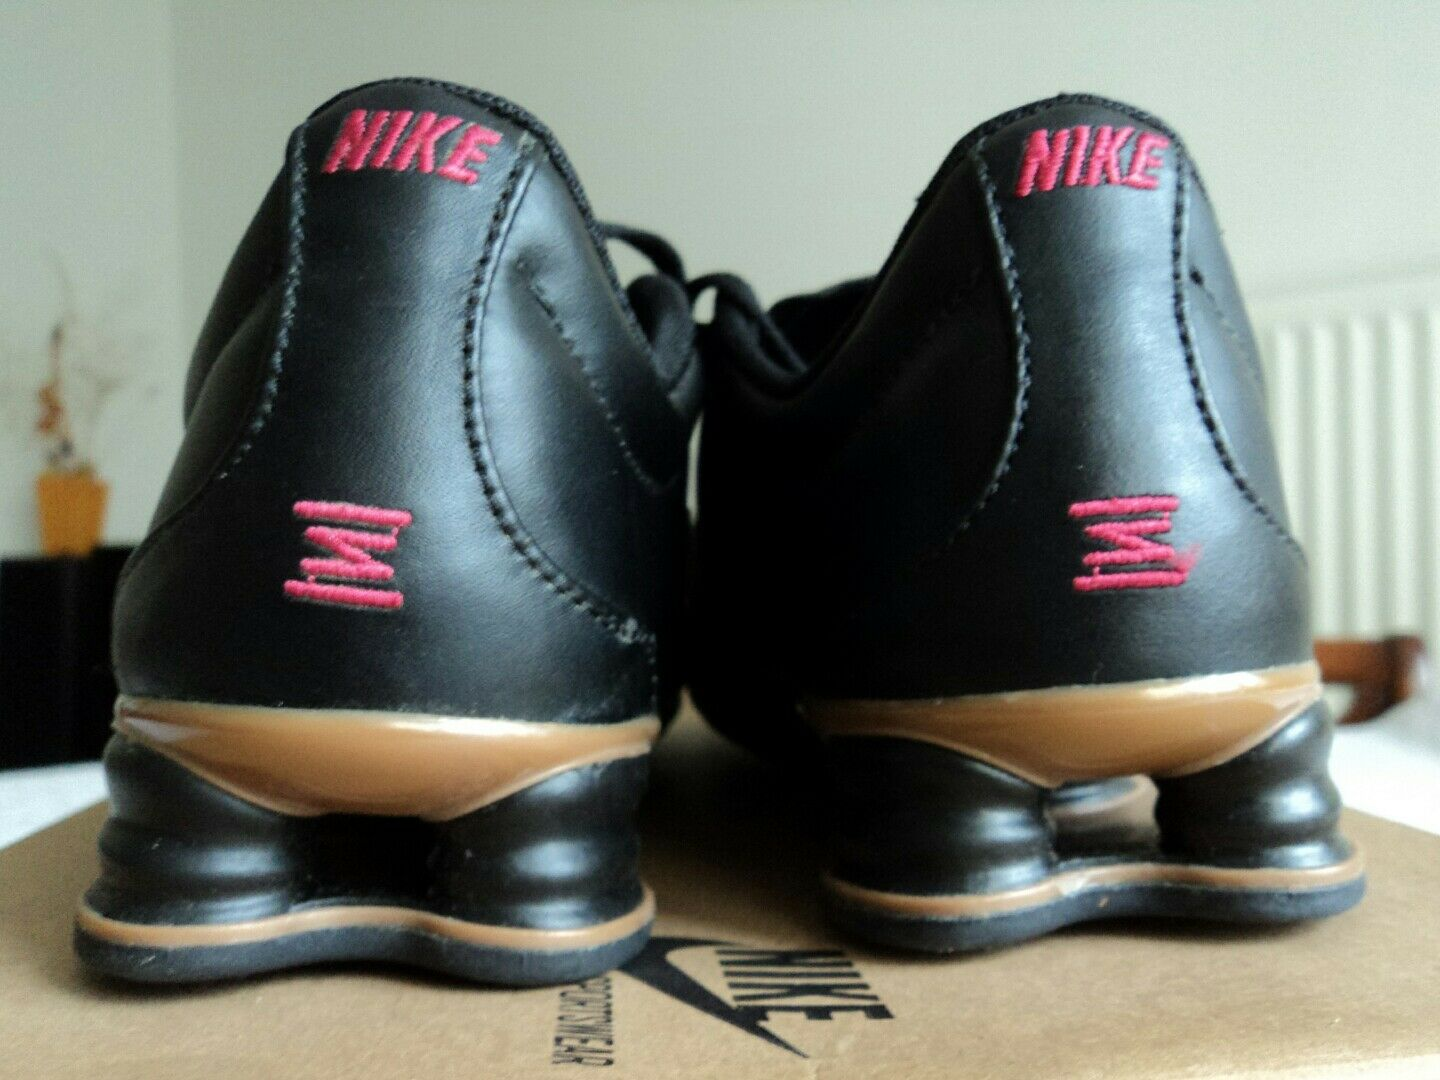 sports shoes 4c975 07439 NiKE NiKE NiKE SHOX SNEAKERS RIVAL, NEUVES AVEC BOÎTE, POINTURE 40,  INTROUVABLE.